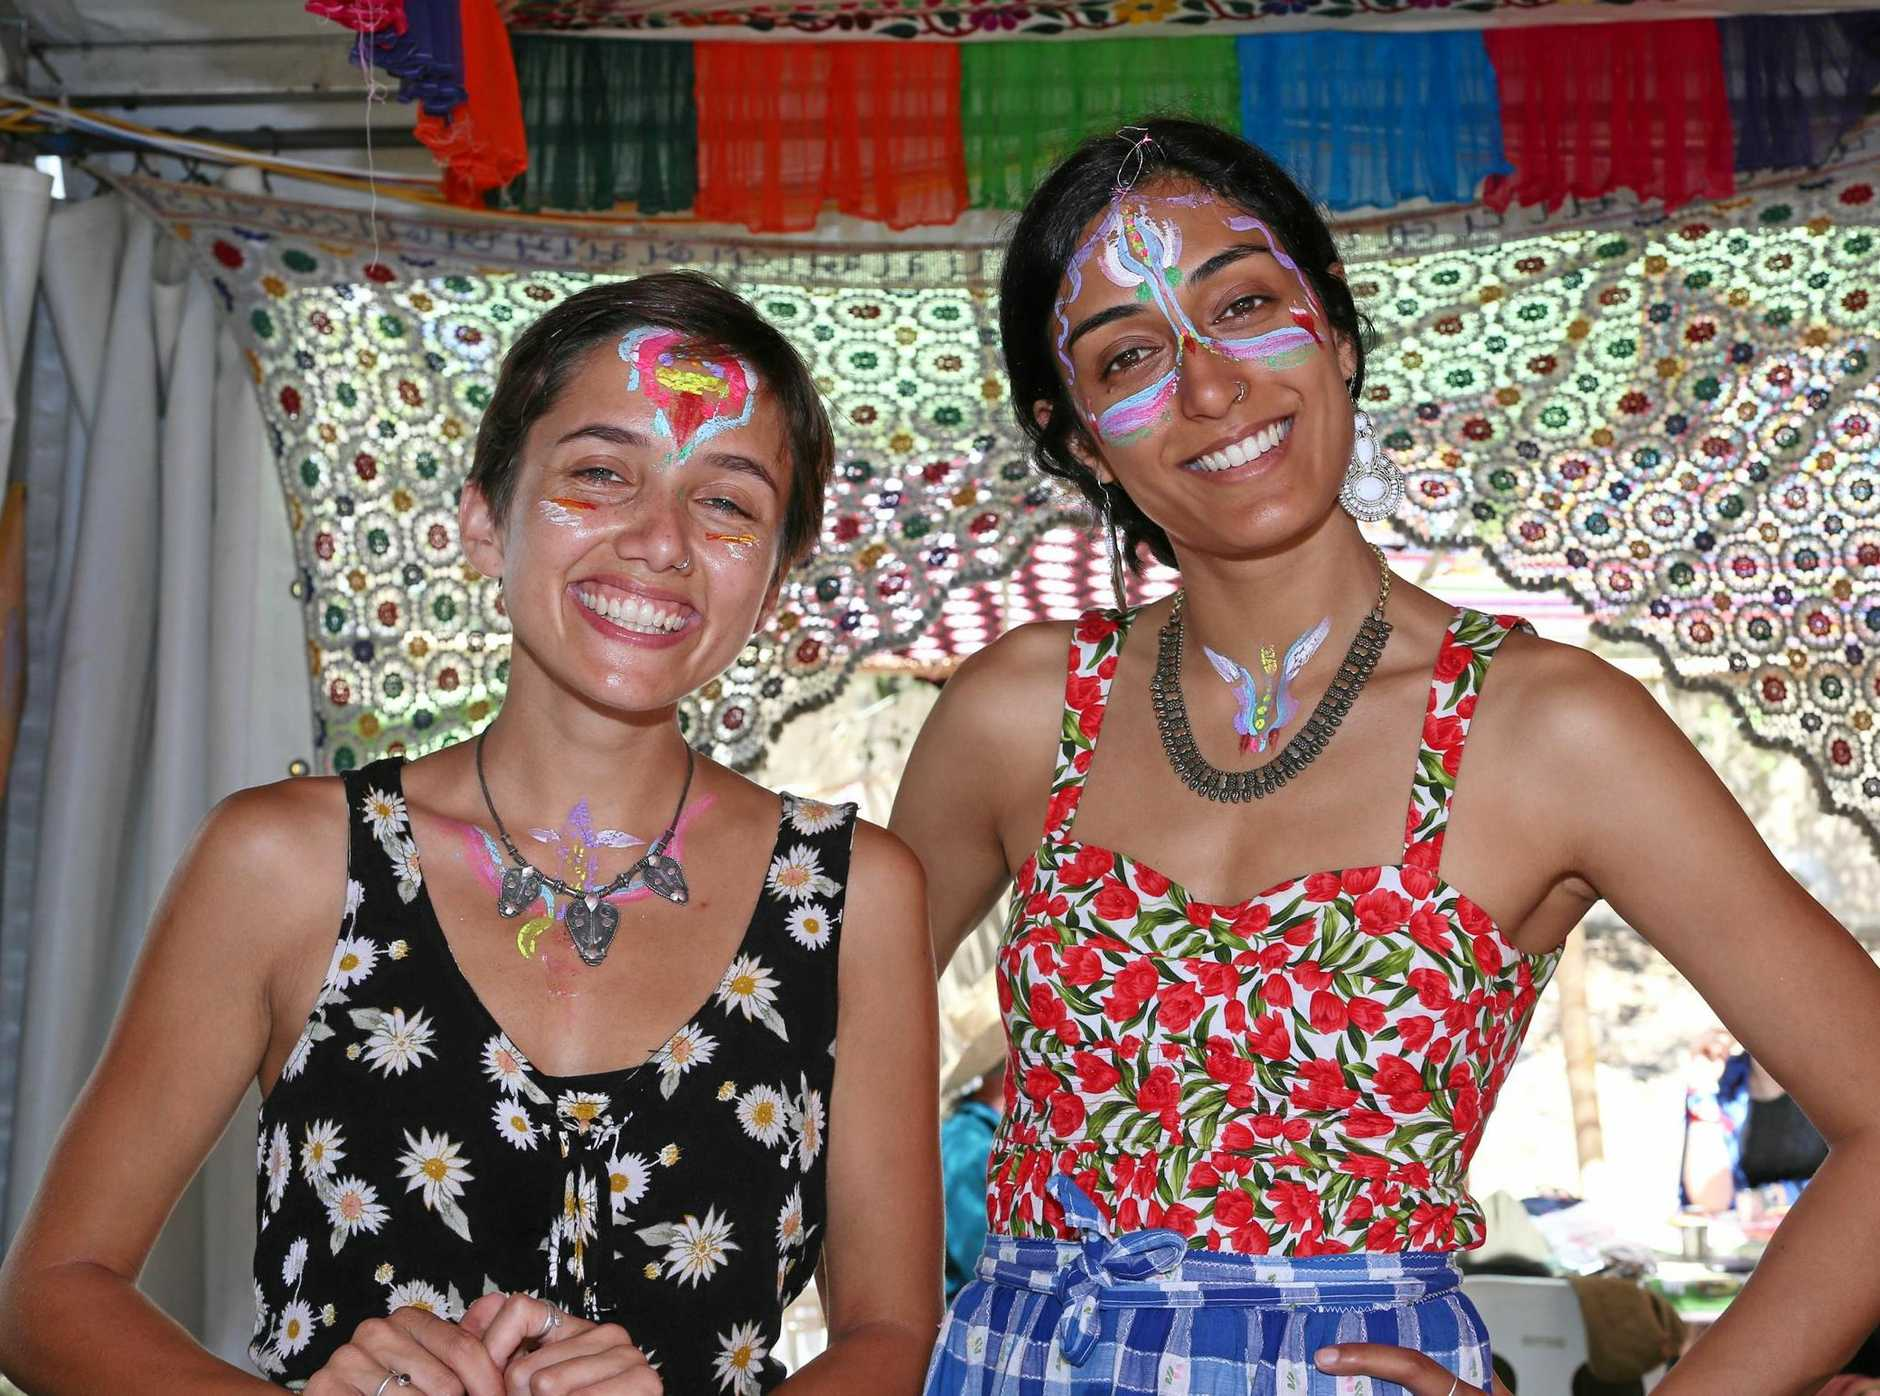 GRACE Dawson and Divya Gordon were dressed to impress at last year's Woodford Folk Festival.